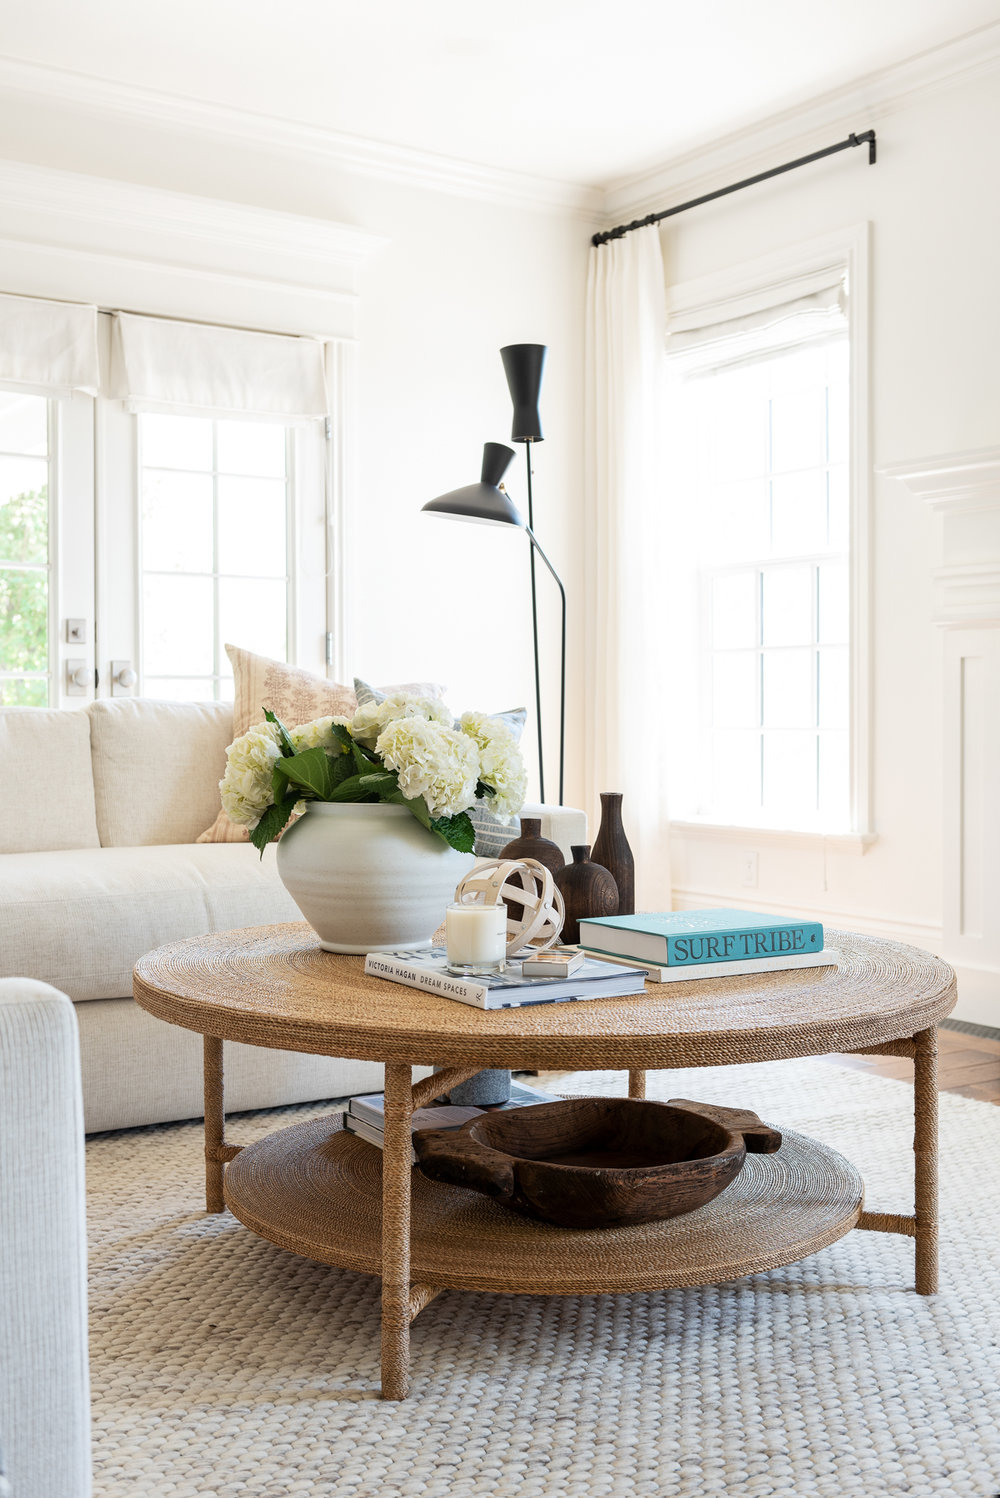 Hacks for Round Coffee Table Styling   Studio McGee